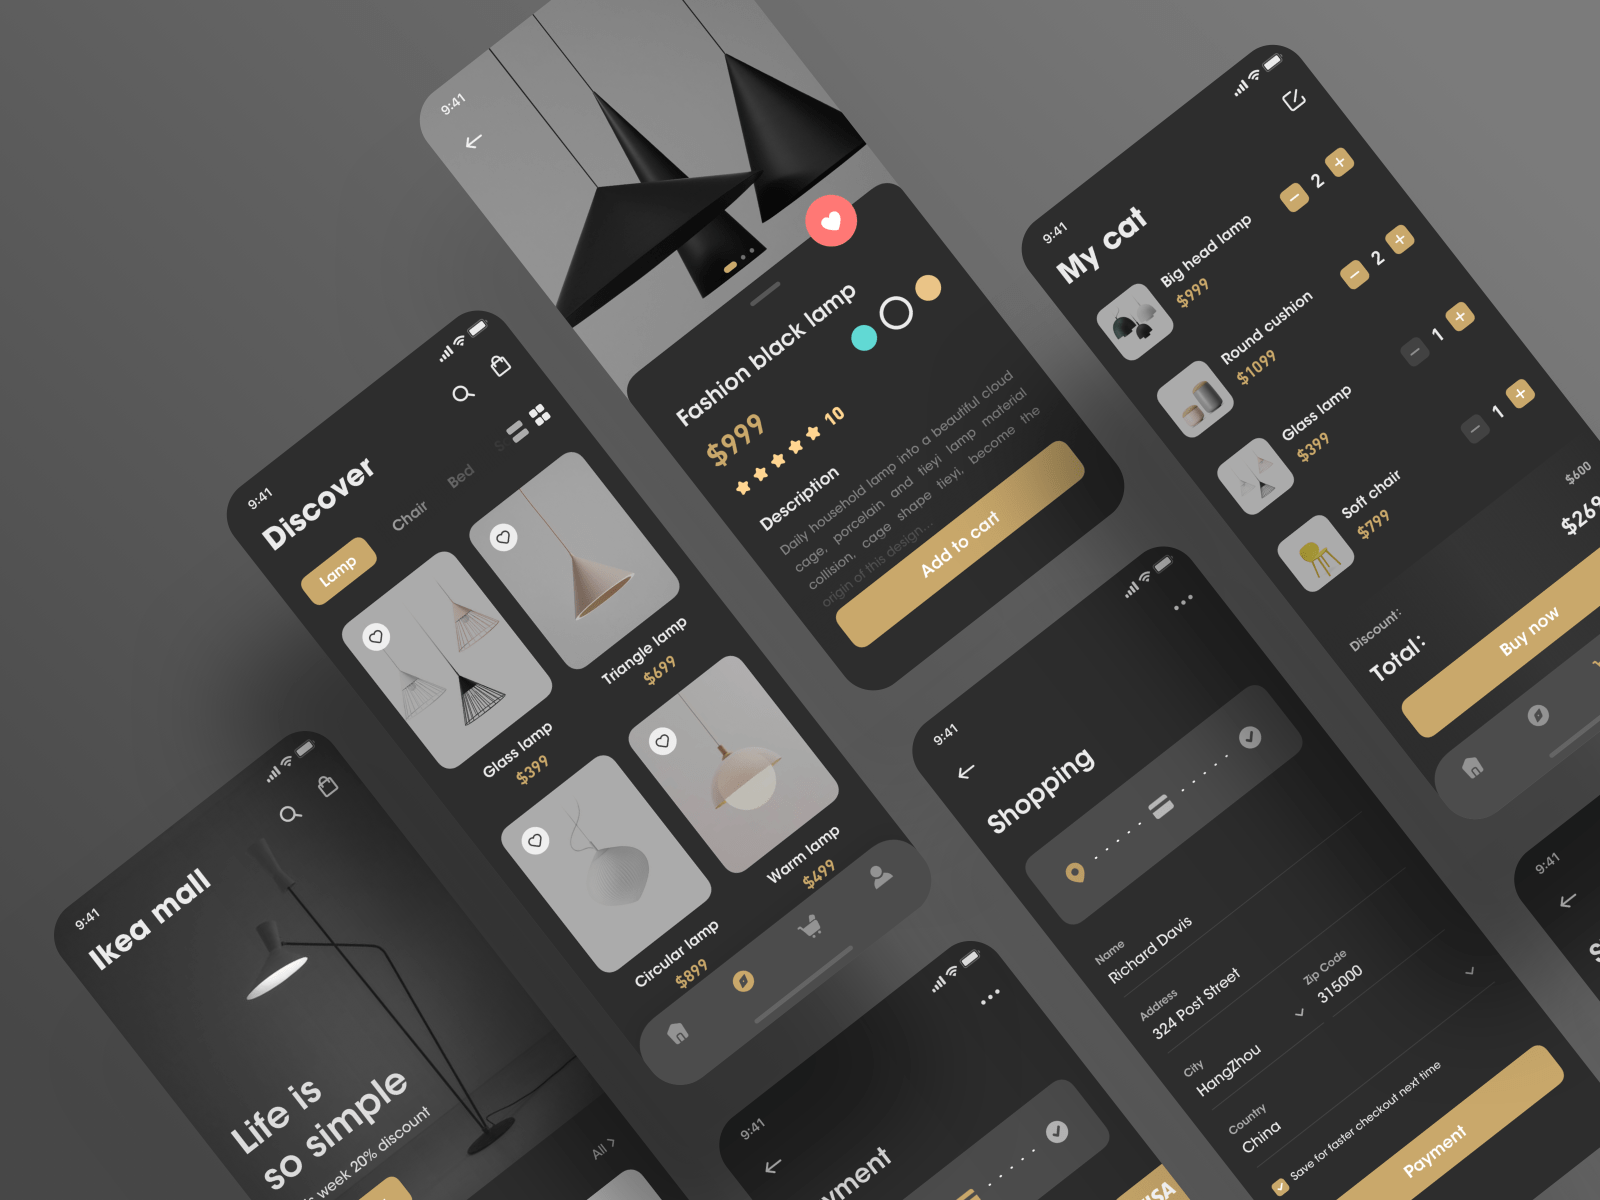 Furniture e-commerce app by Carlos